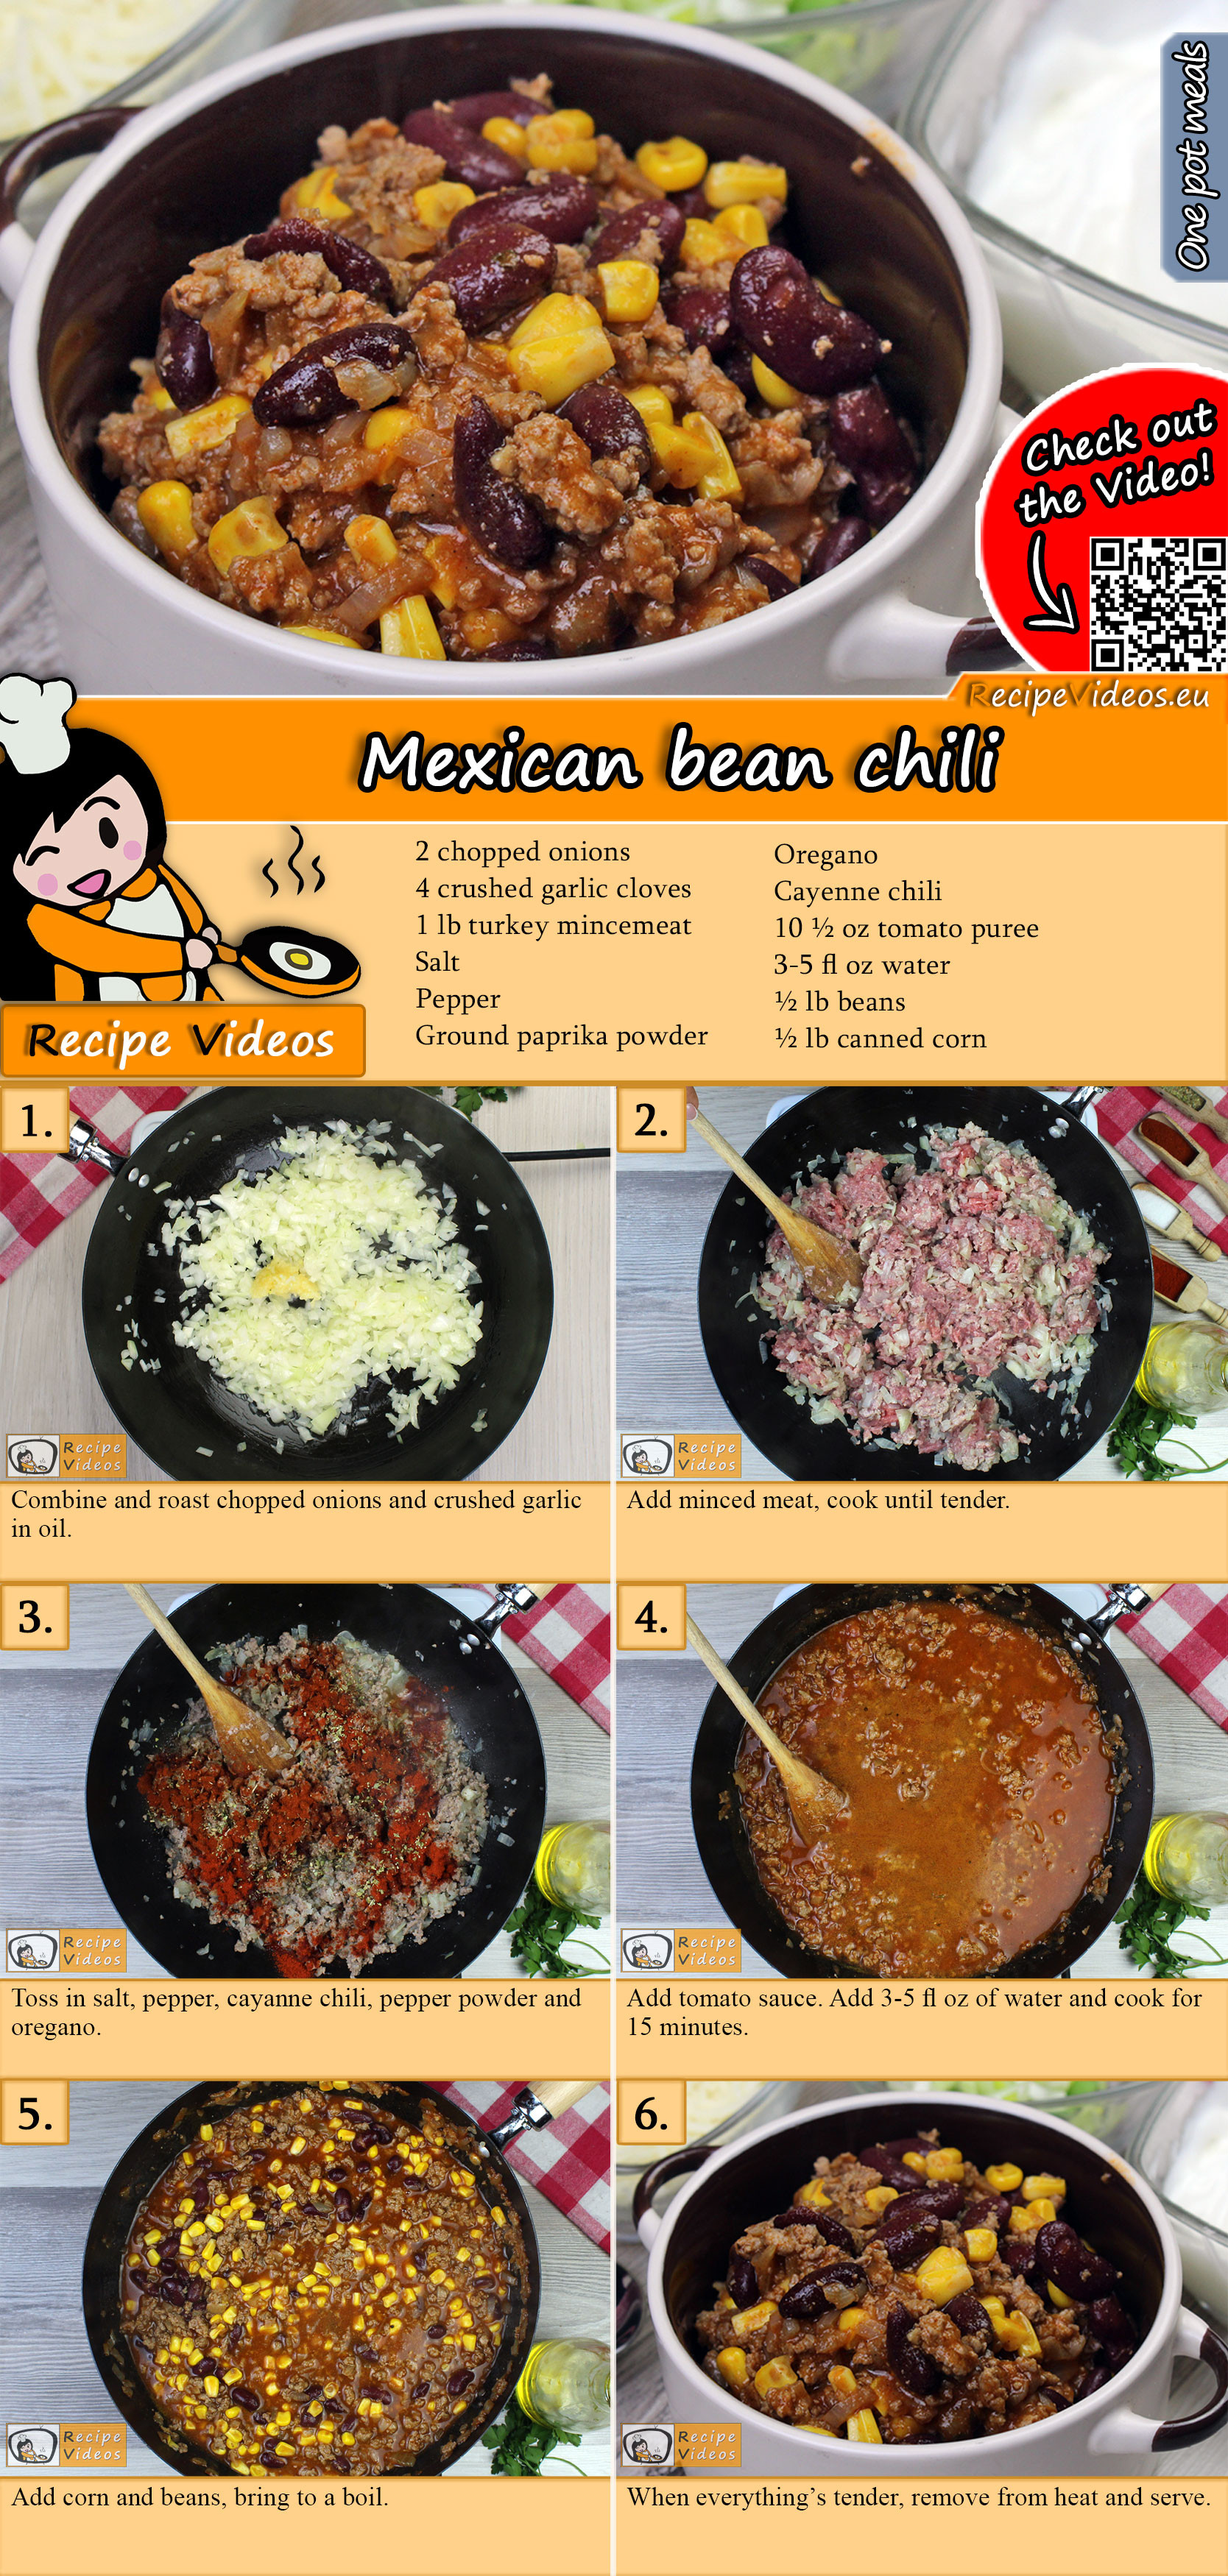 Mexican bean chili recipe with video